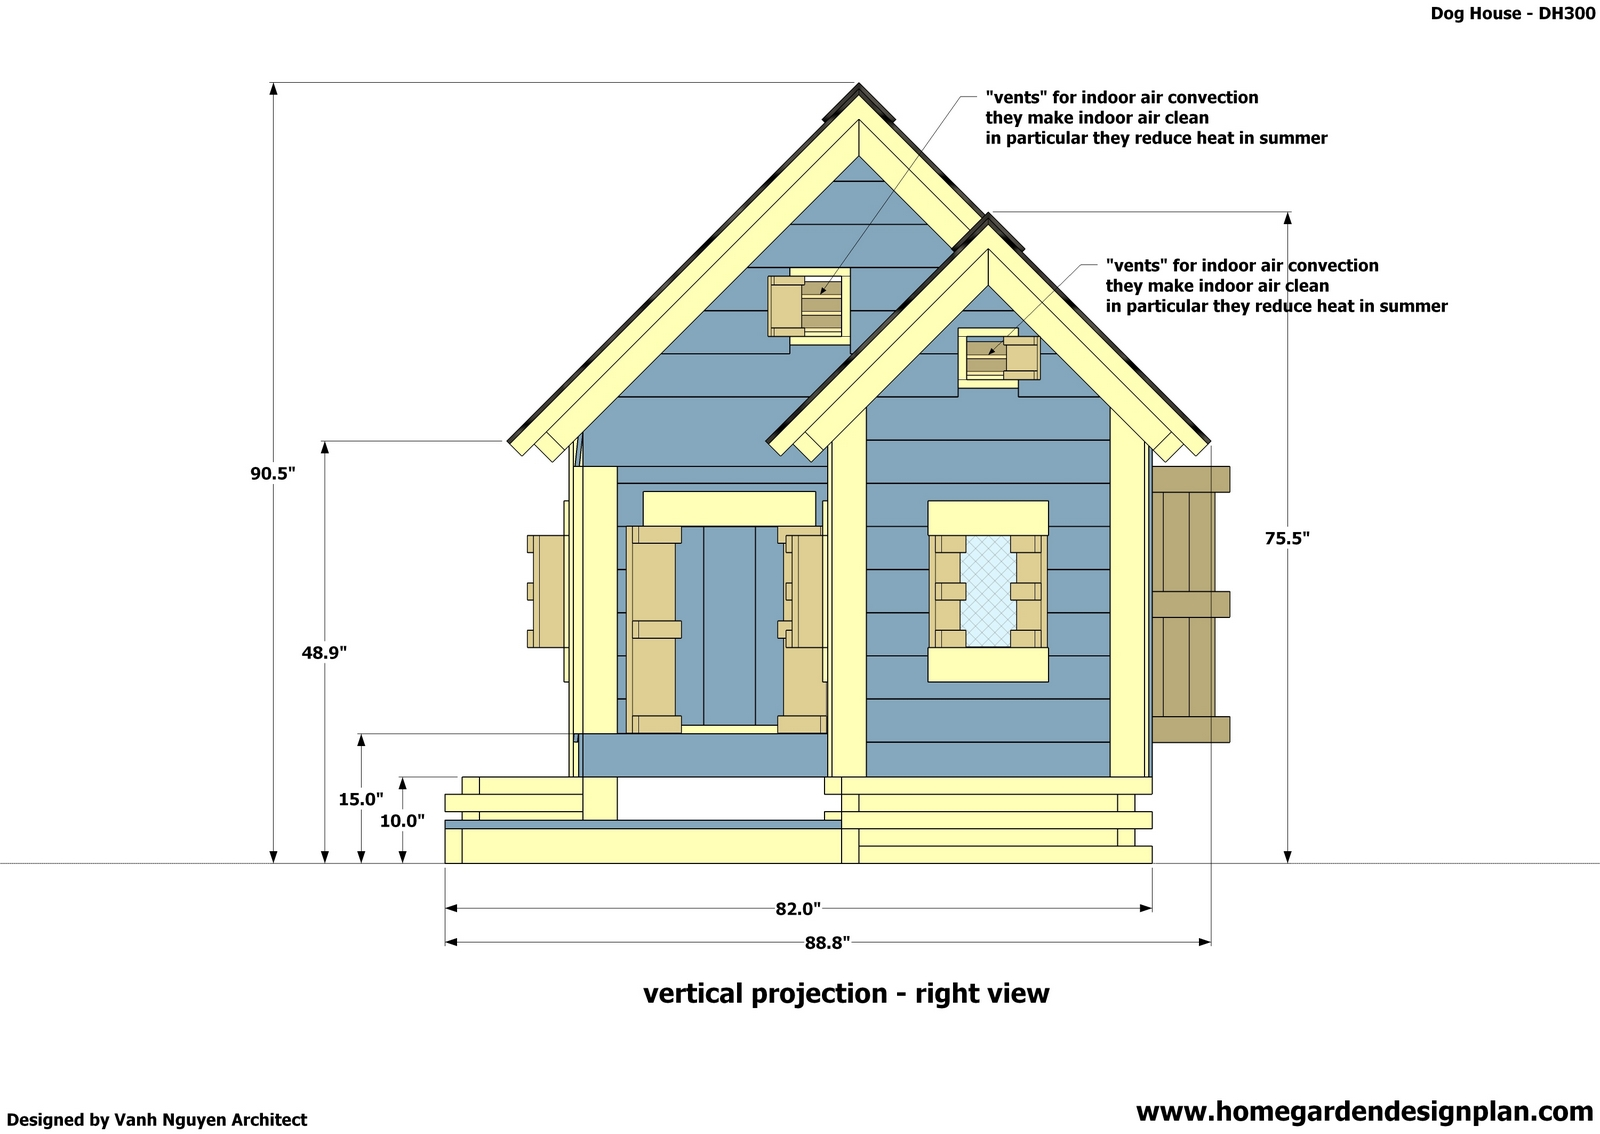 Home garden plans dh300 dog house plans free how to for Free house building plans